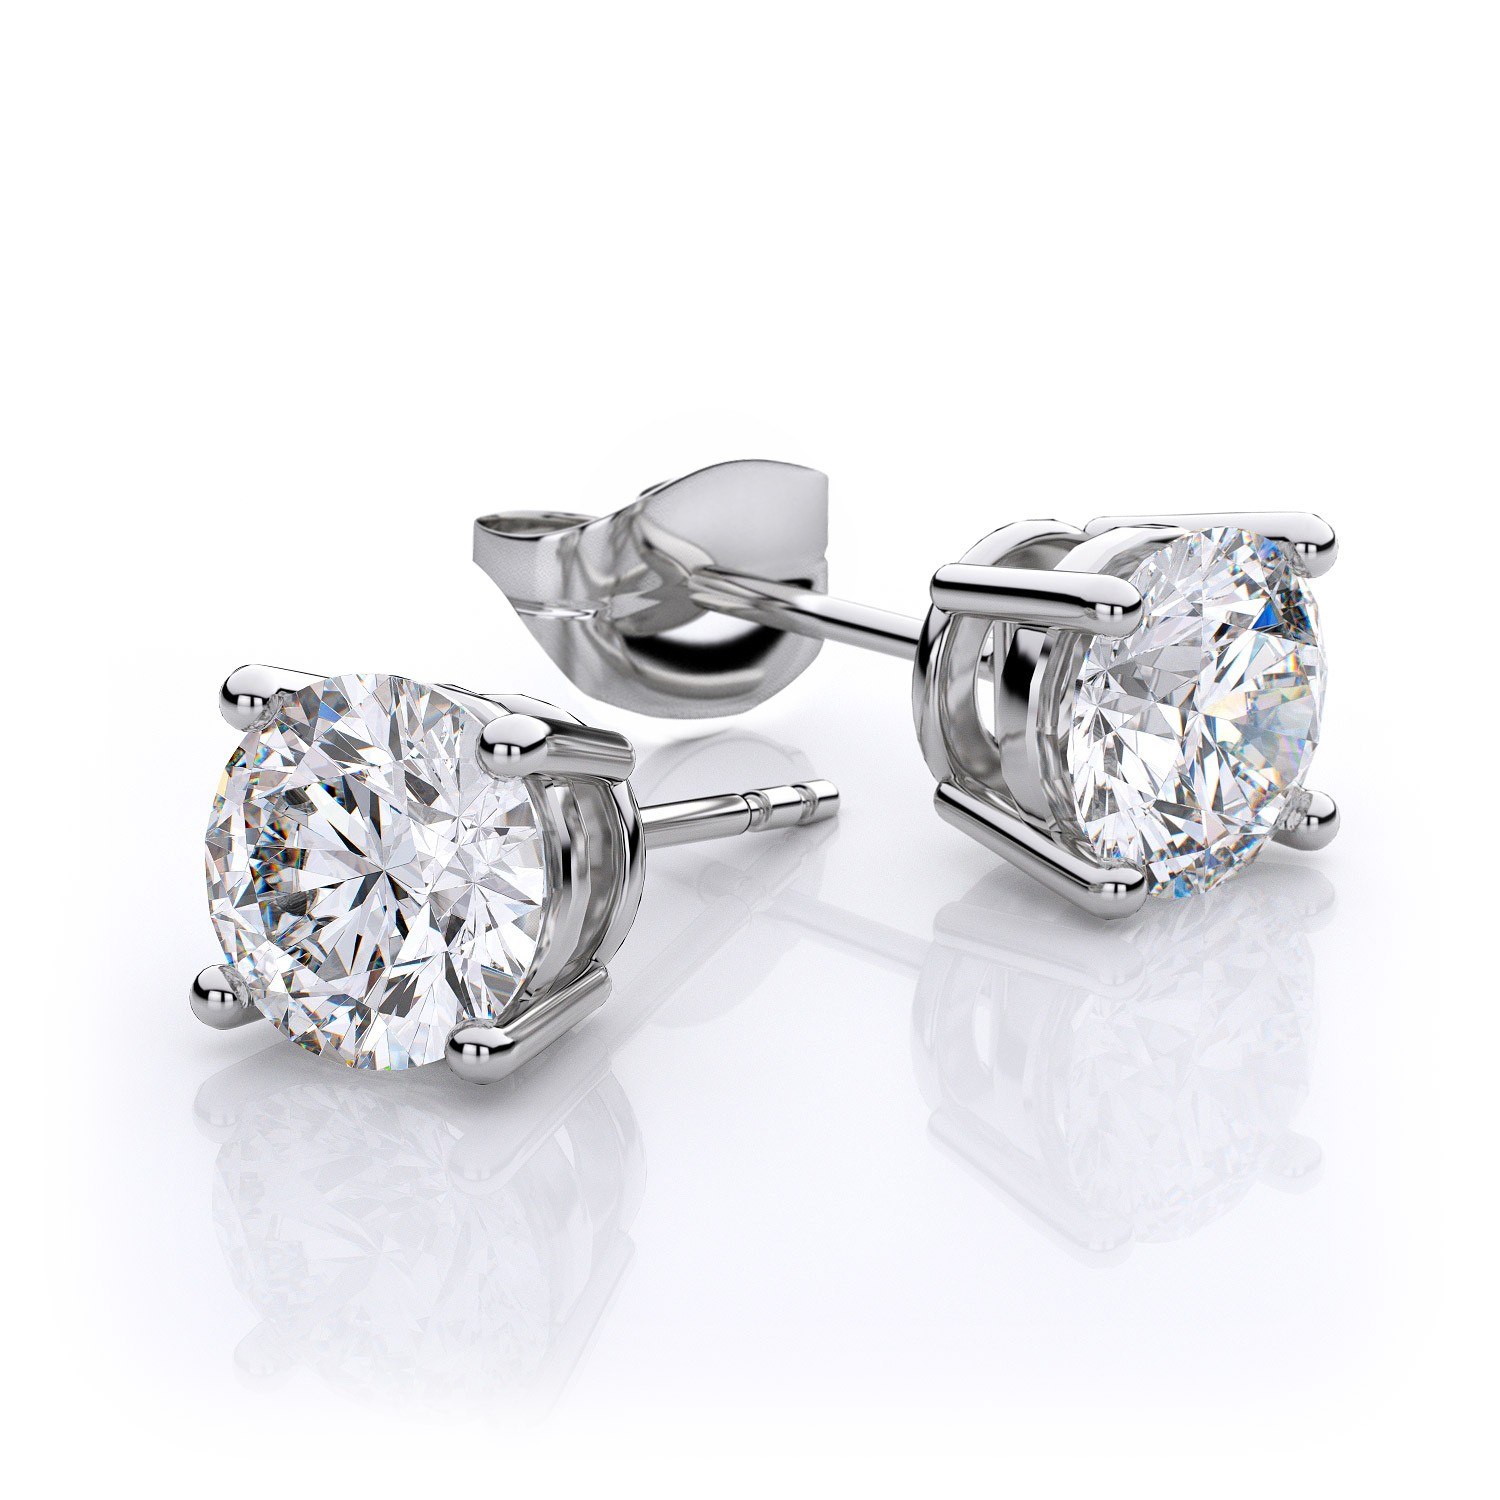 18ct white gold diamond stud earring FJ4002